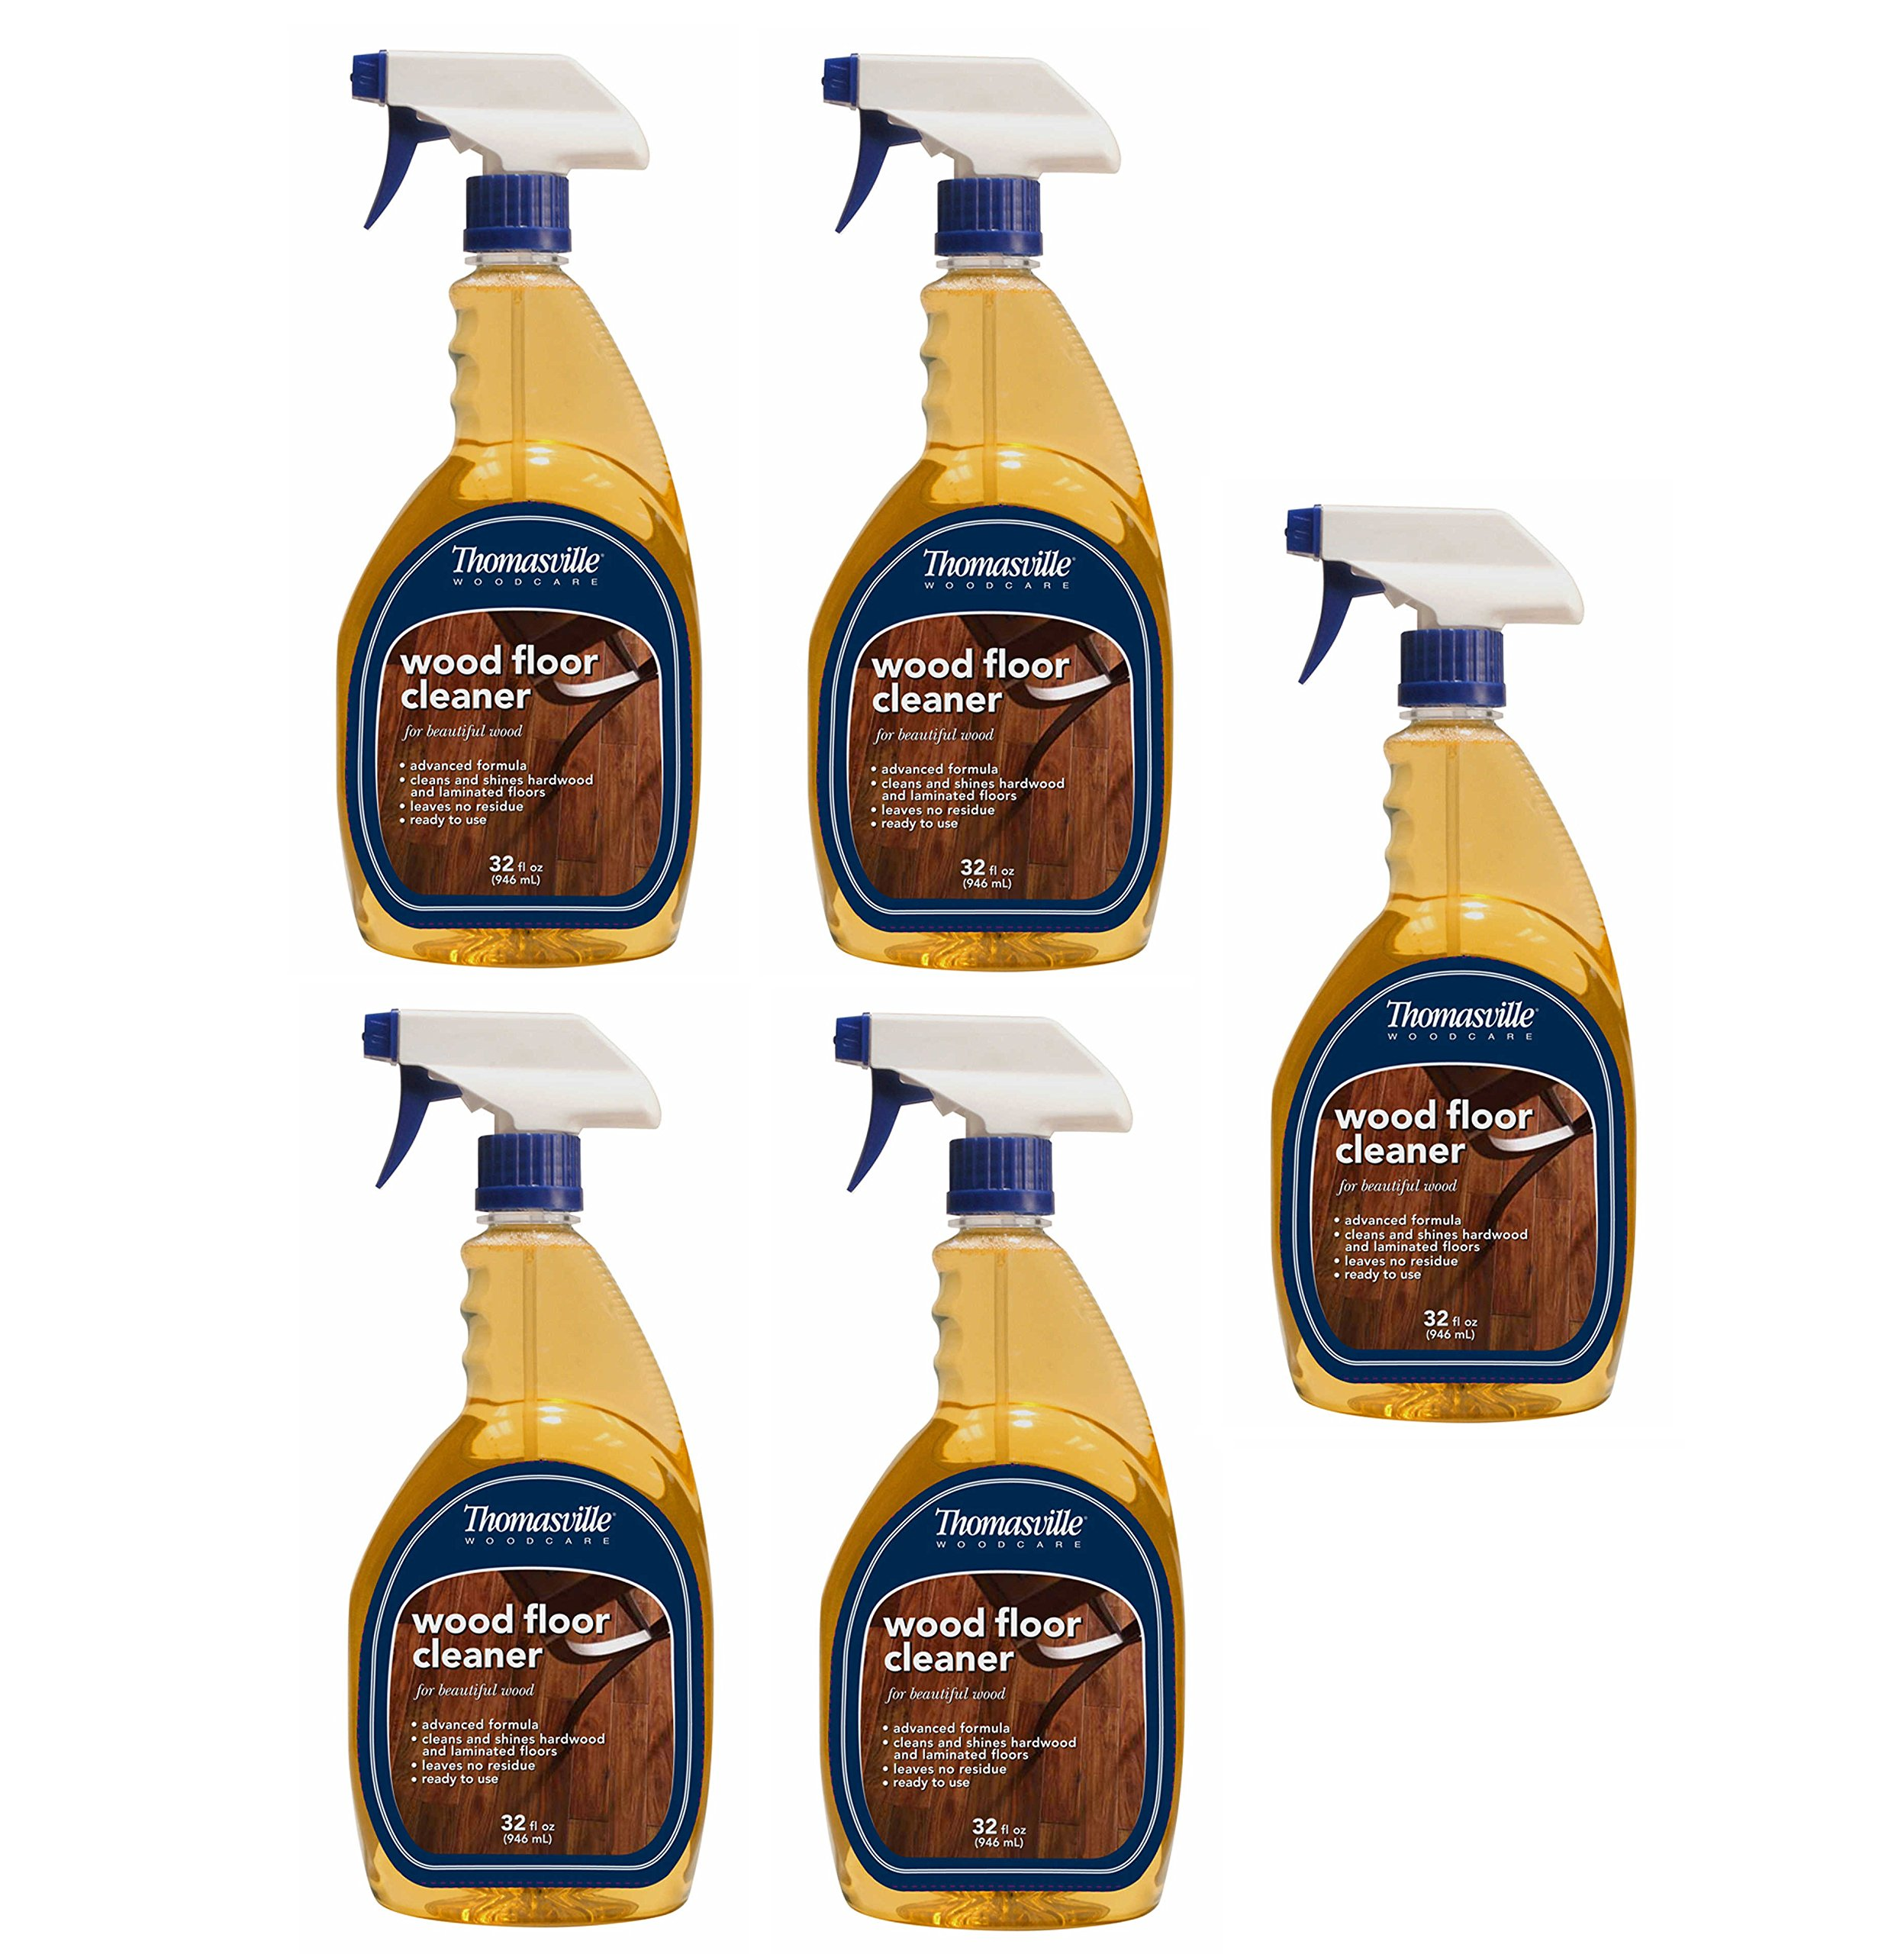 Thomasville Wood Floor Cleaner 32 Oz Spray Bottle Dries without streaking (Pack of 5) Made in USA